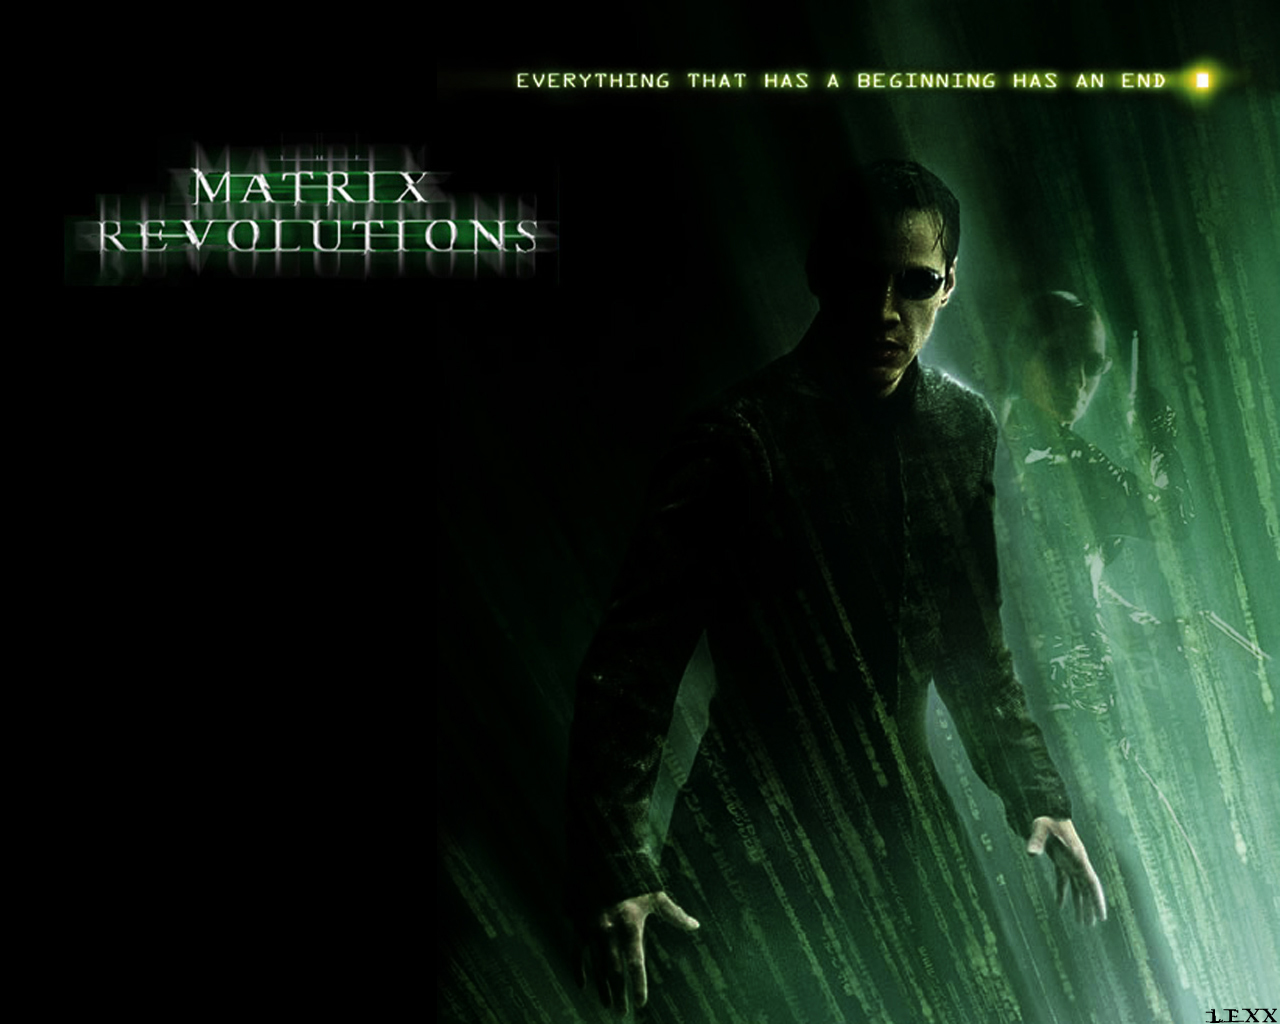 http://4.bp.blogspot.com/-nZZikIfRbyA/TgBnE7CXZLI/AAAAAAAAARY/dYJxi93Fcgg/s1600/matrix-revolution-neo-movie-wallpaper.jpg